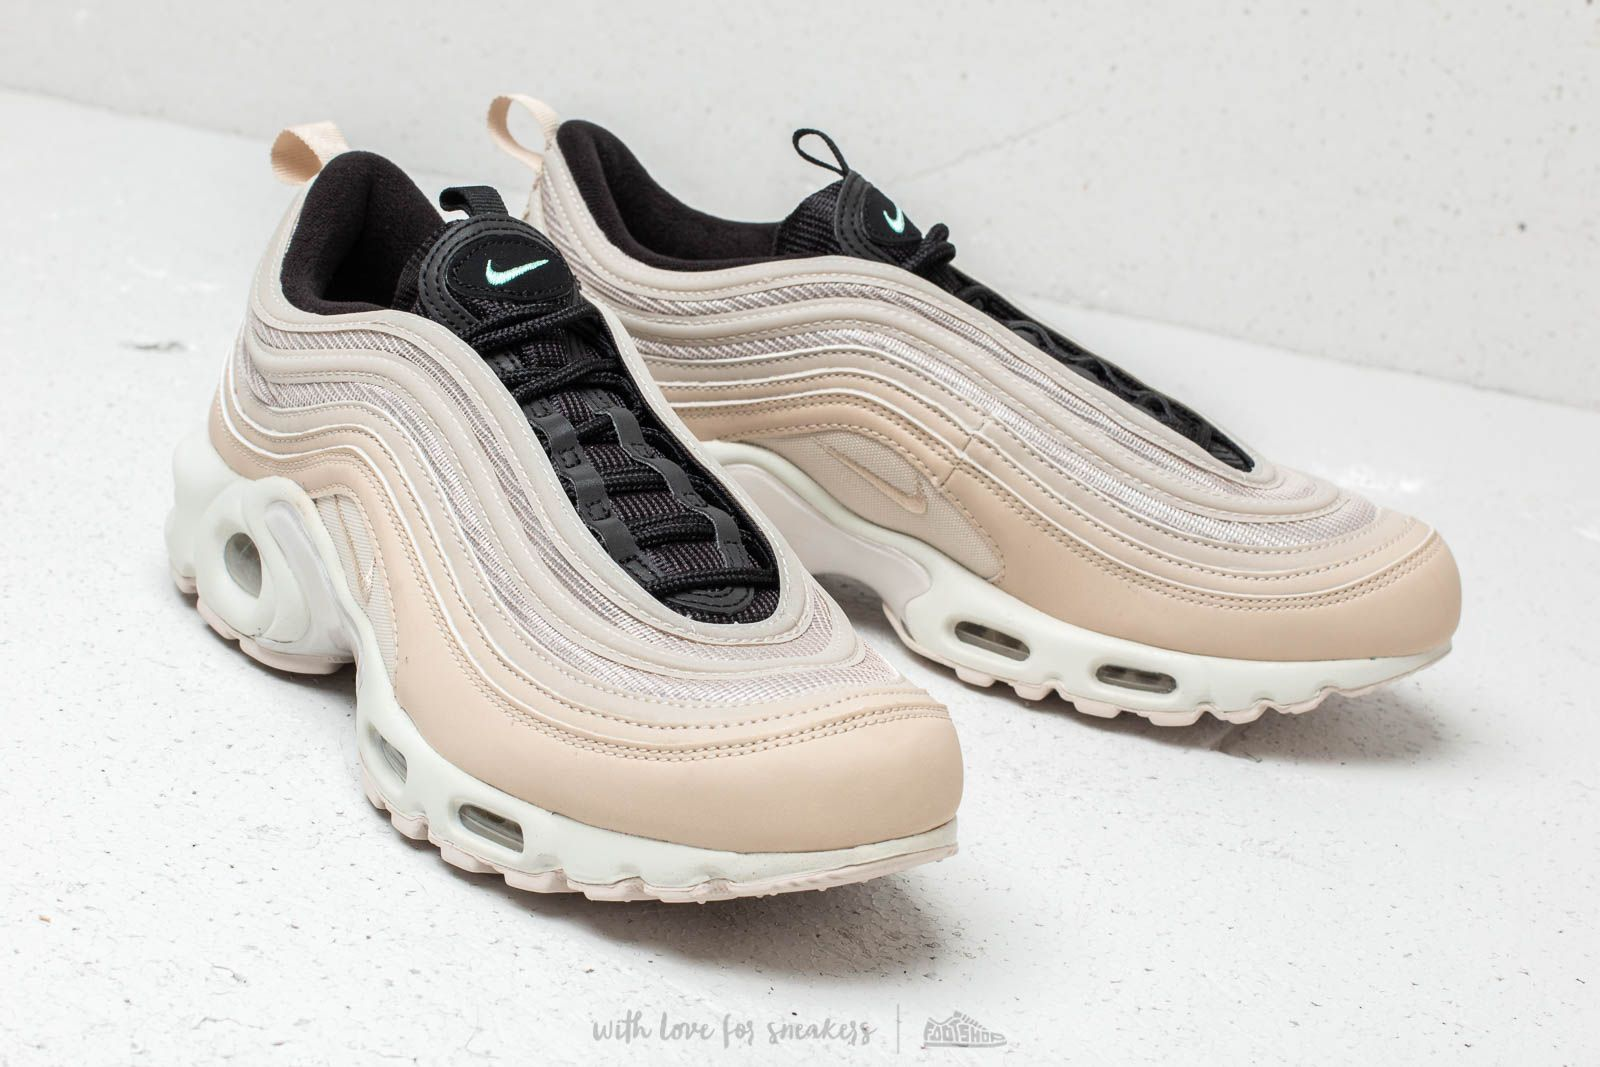 Nike Air Max Plus 97 Light Orewood Brown Rattan String | Footshop